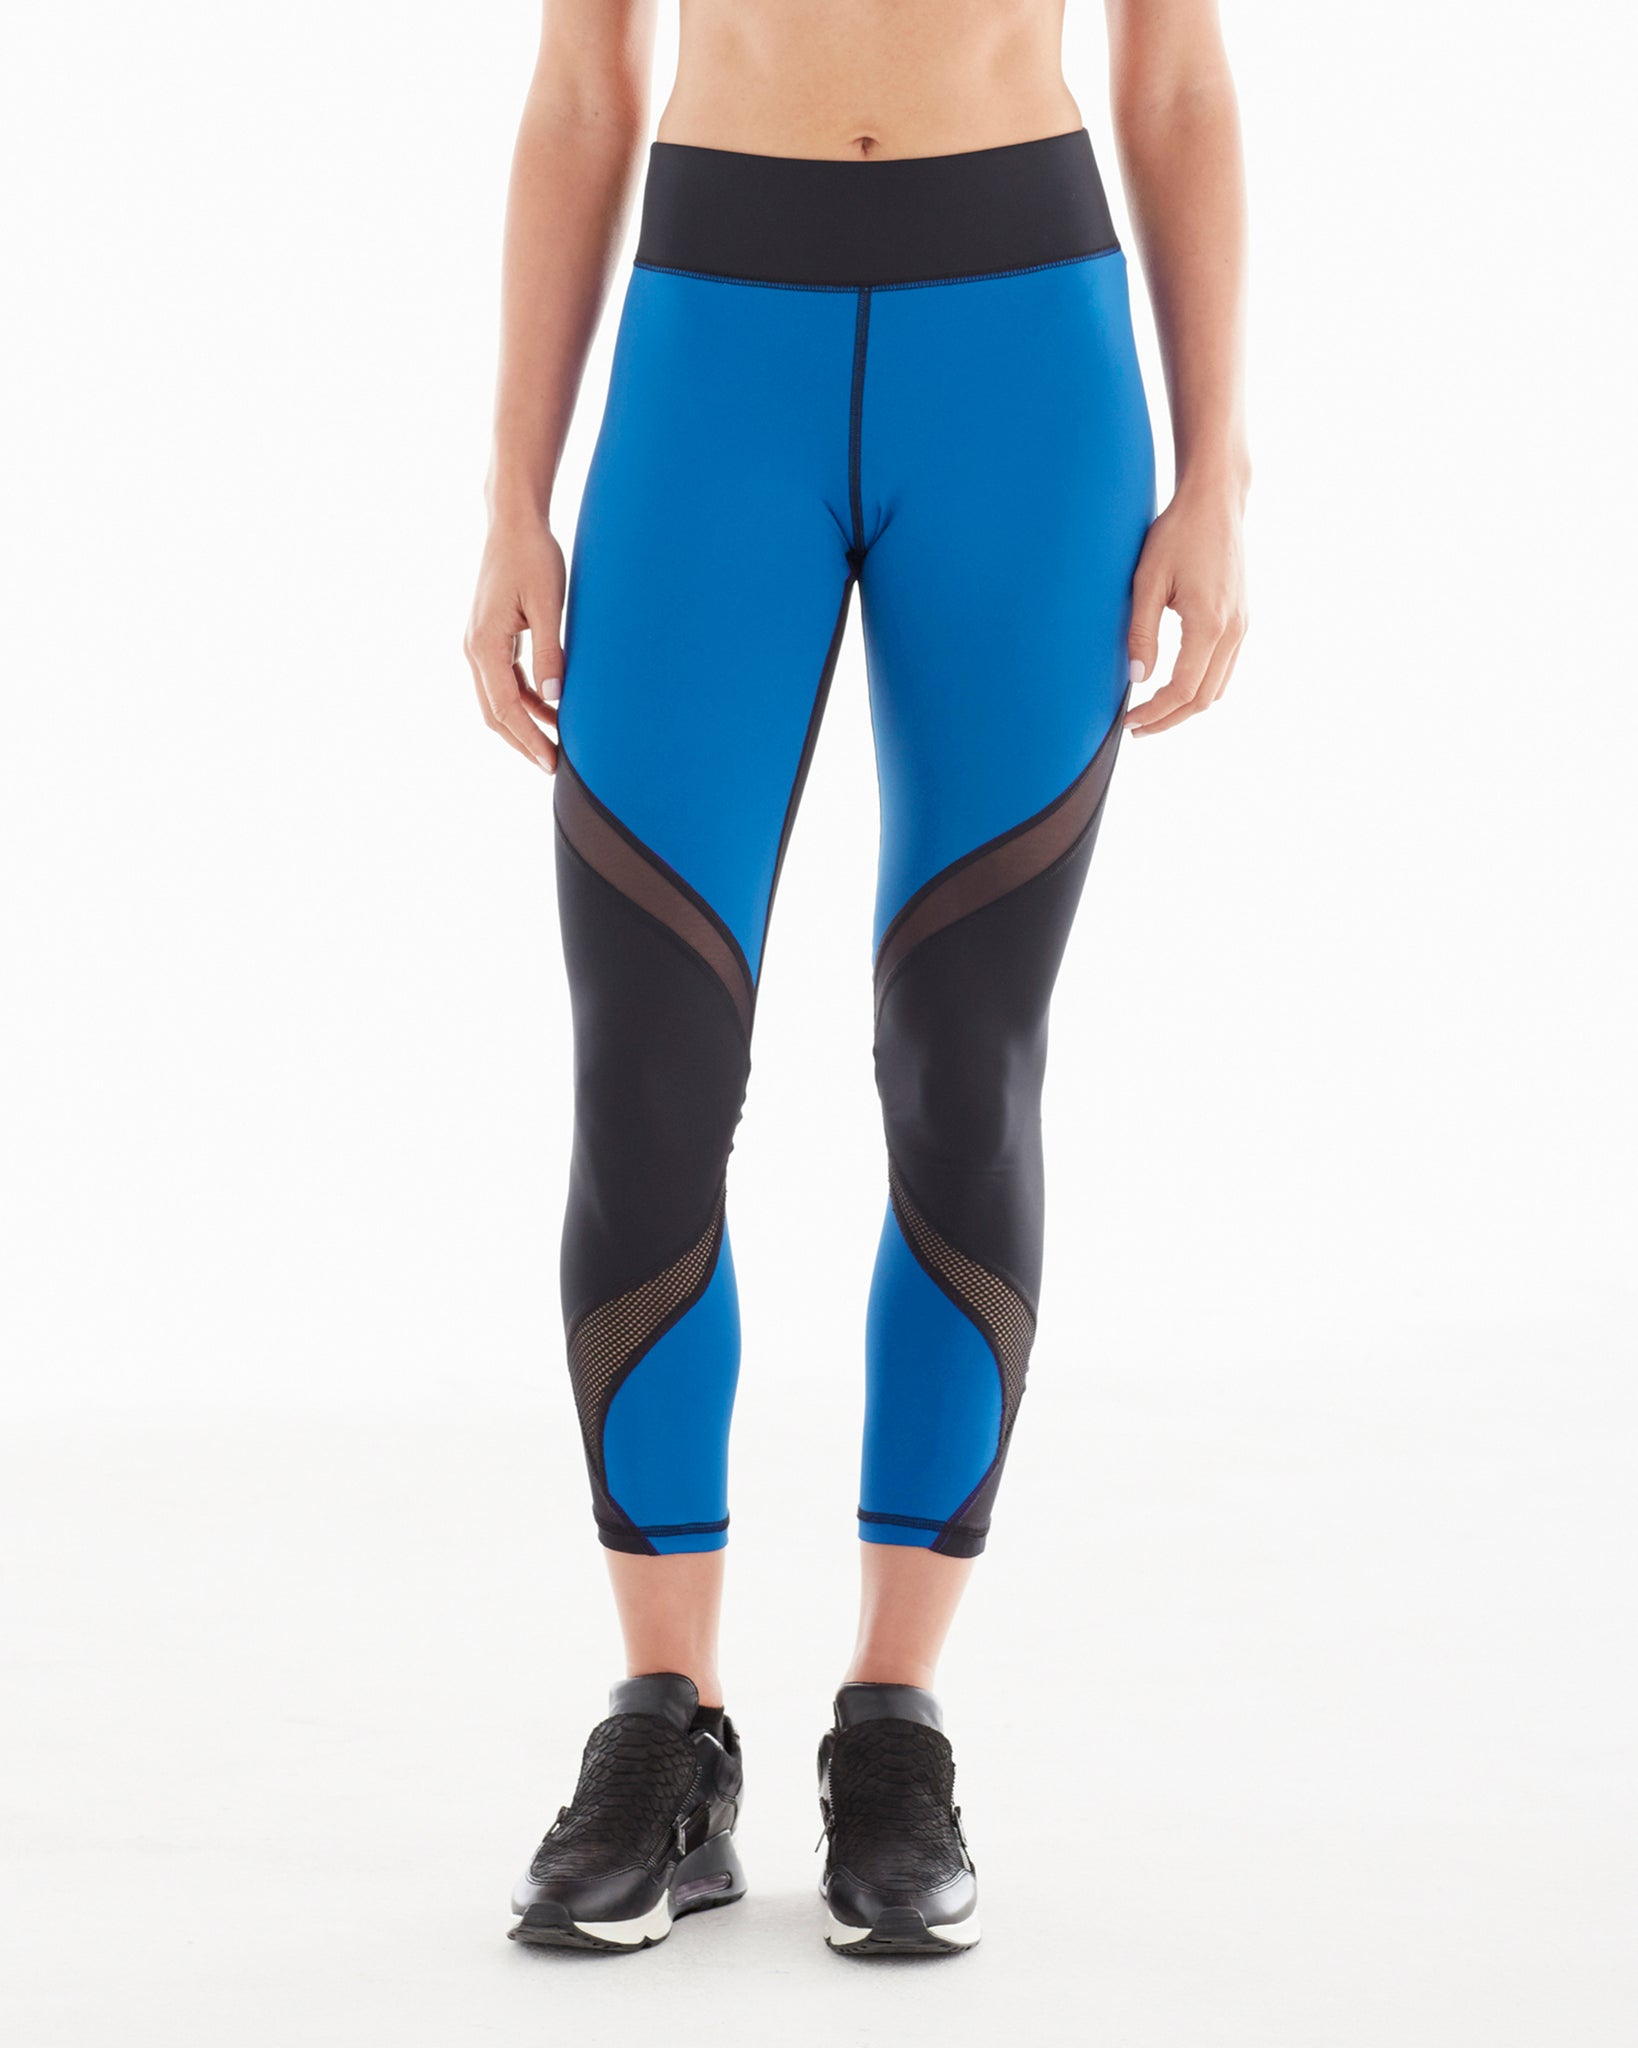 Hydra Crop Legging - Ocean Blue